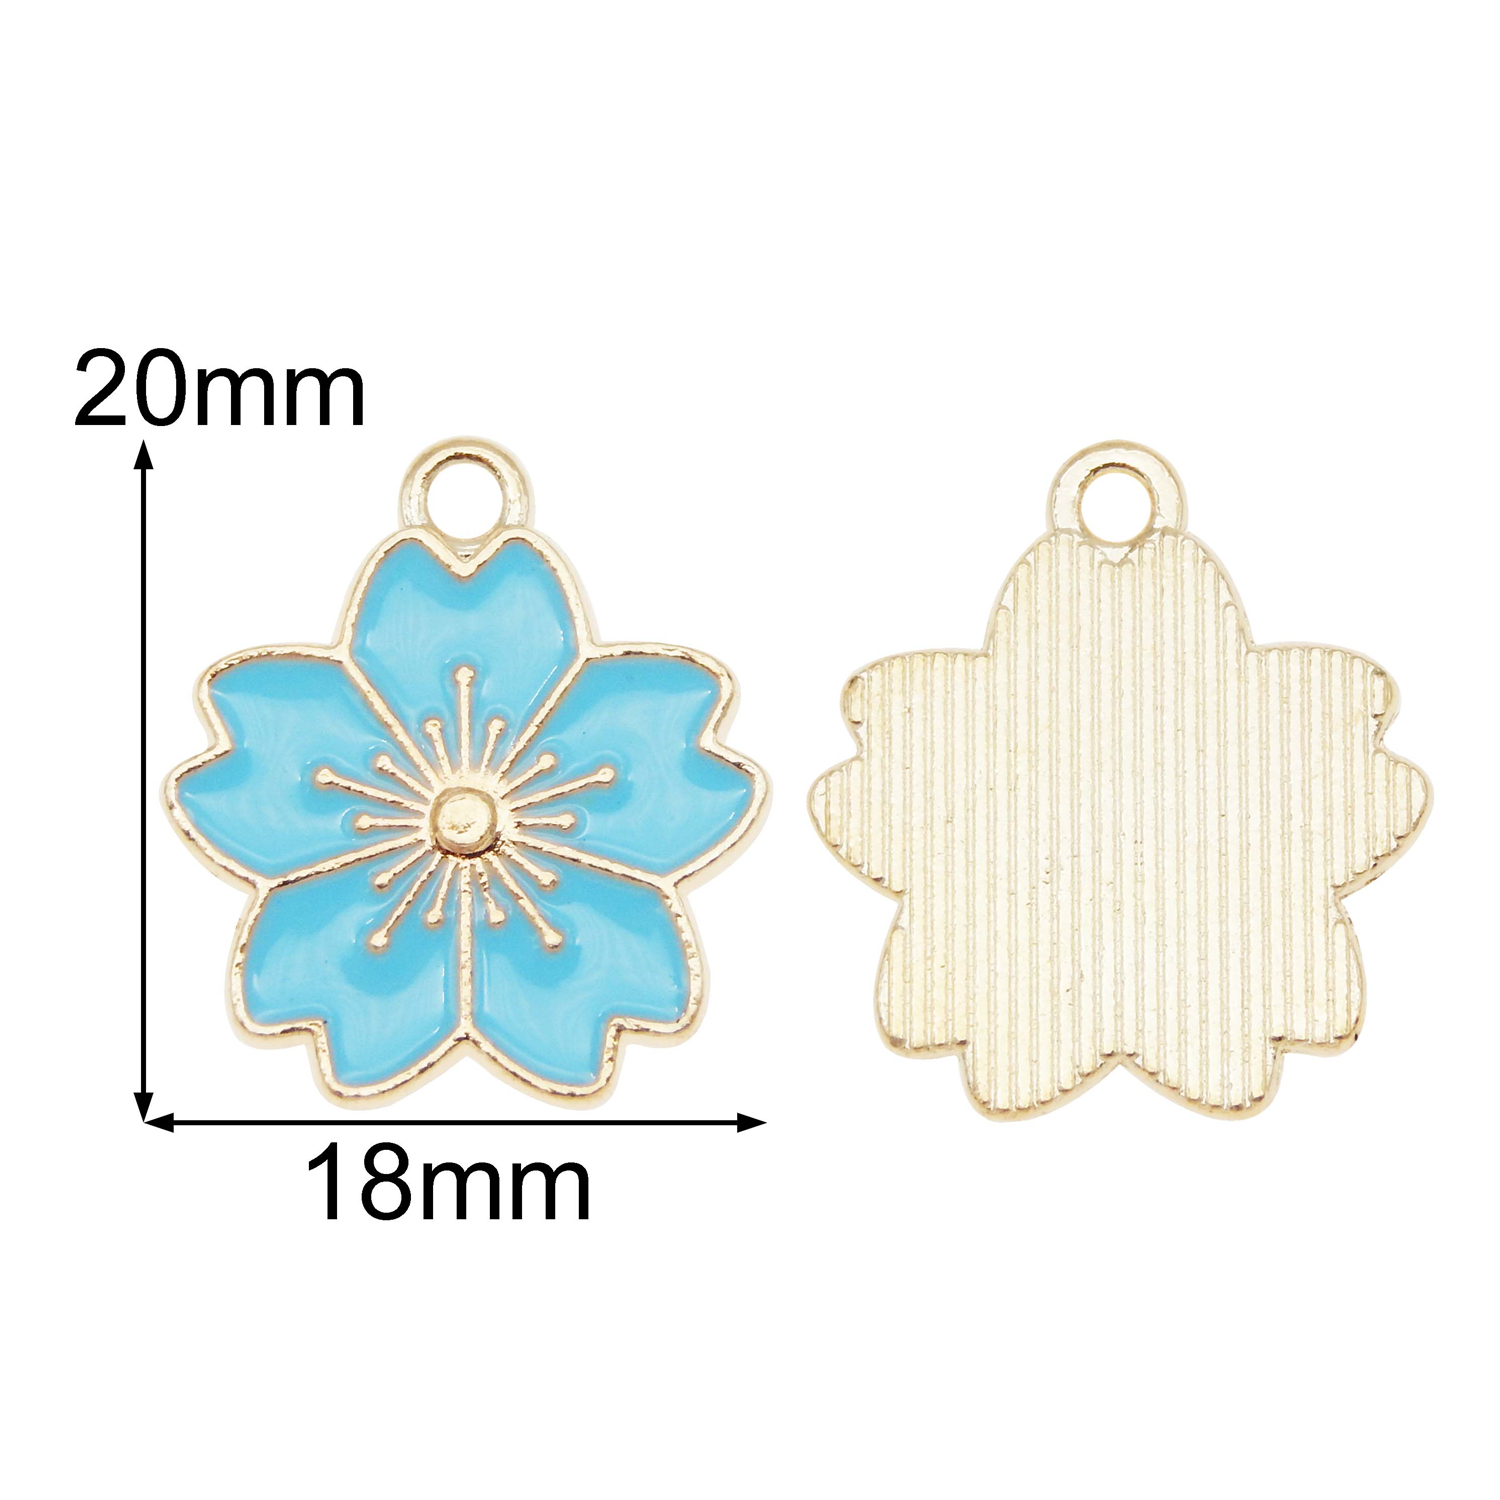 20pcs//lot Enamel 20x18mm Assorted Cherry Blossom Pendant Charms DIY  Accessories